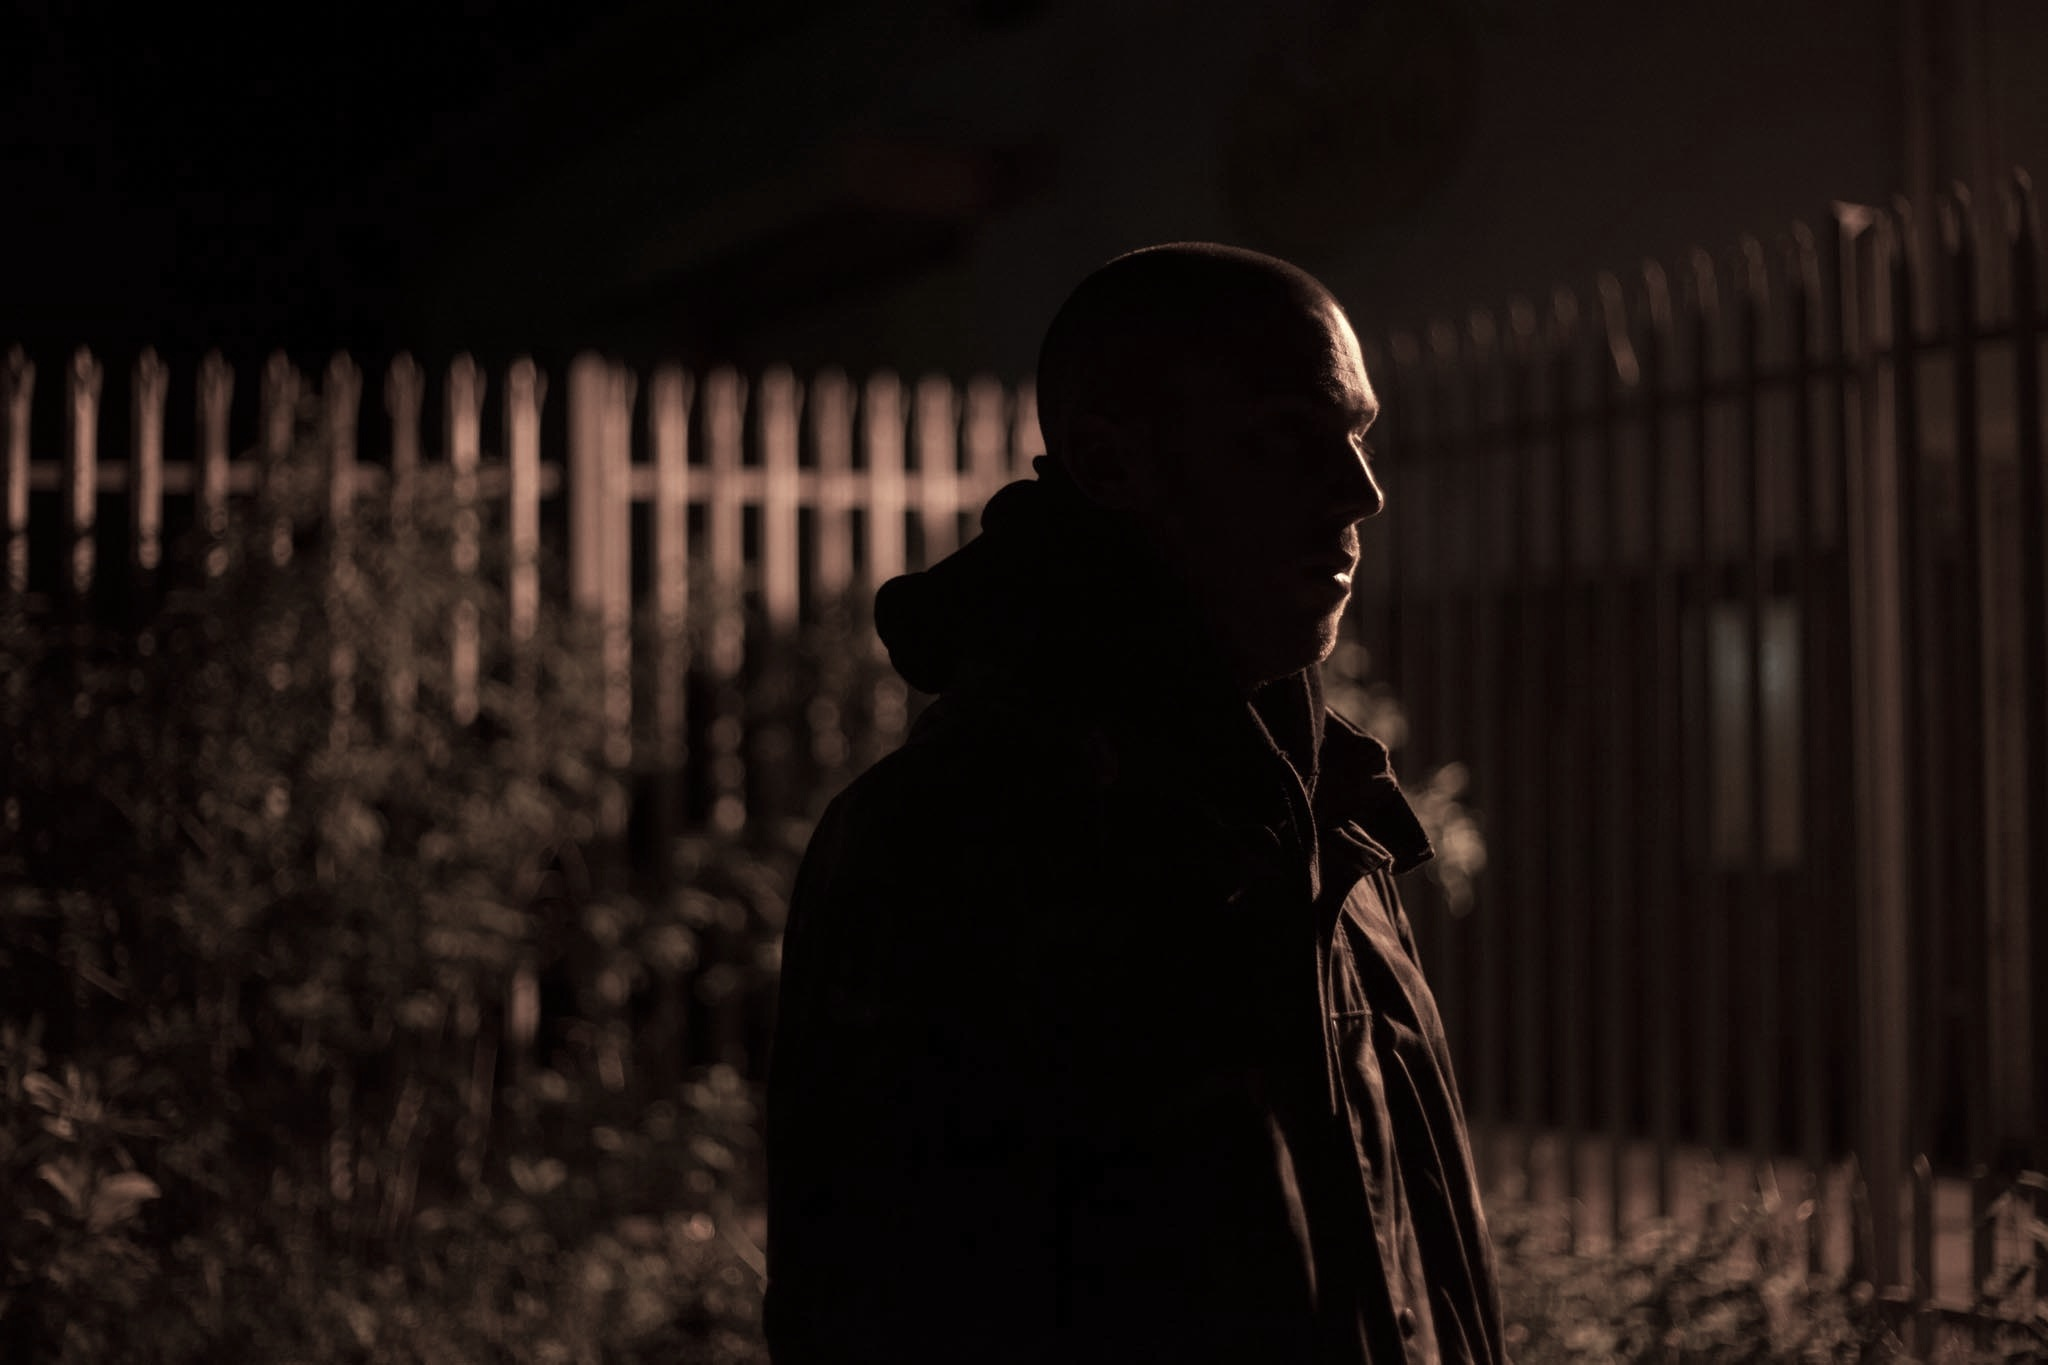 THUMP give away a free Lamont track & stream the Zed Bias remix of 'Far Away' in full